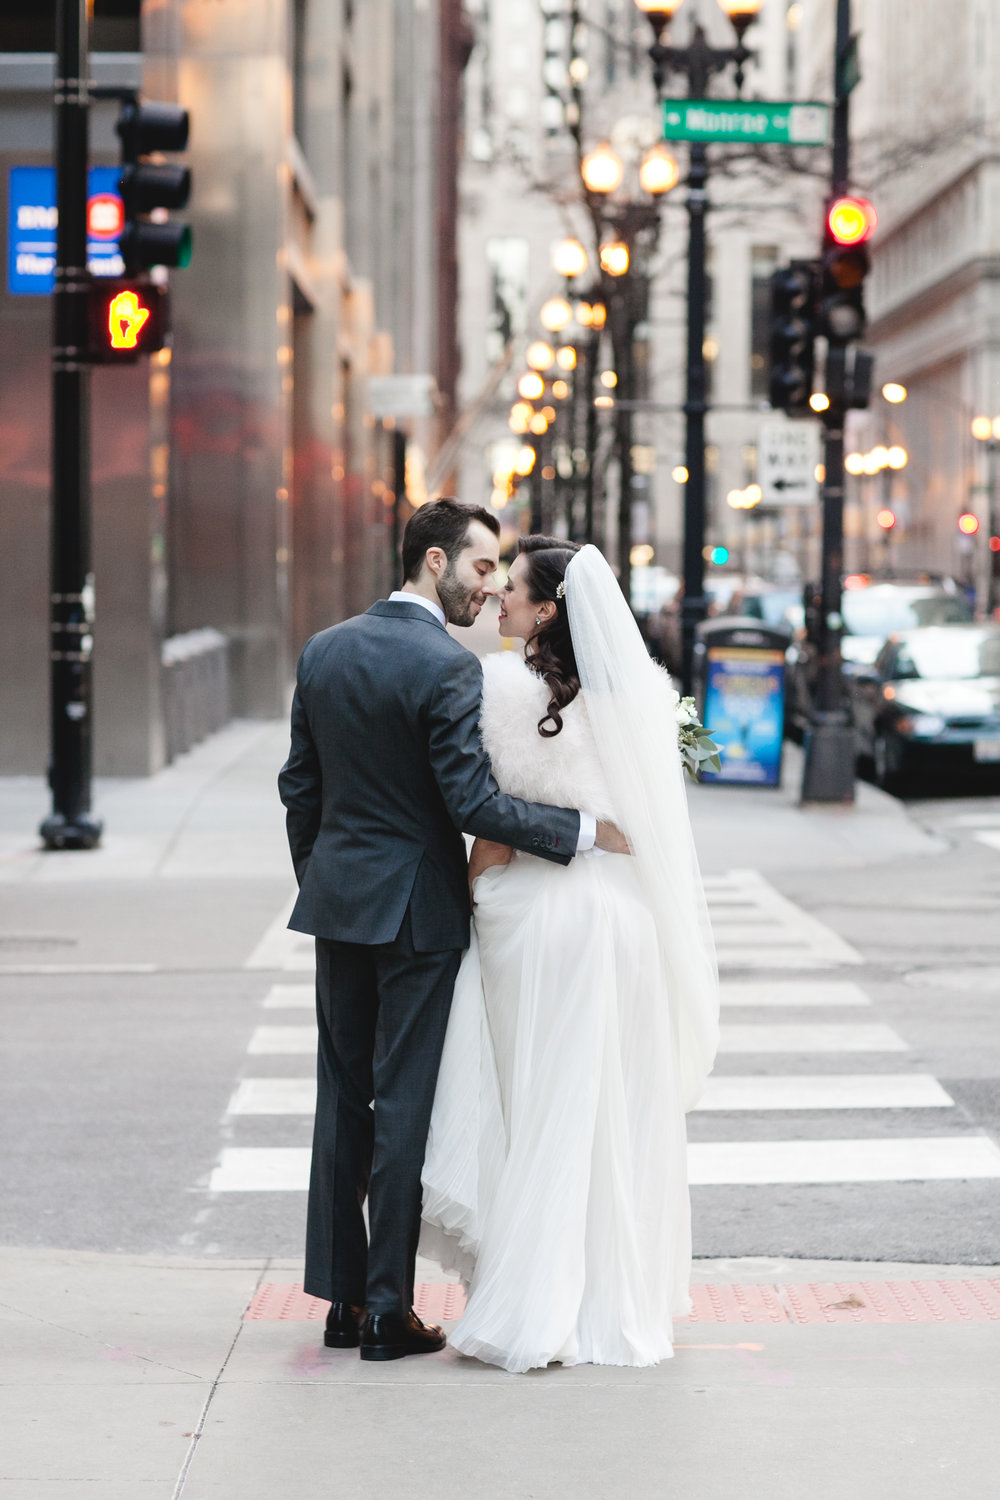 LisaDiederichPhotography_Brooke&NeilWedding_Blog-25.jpg